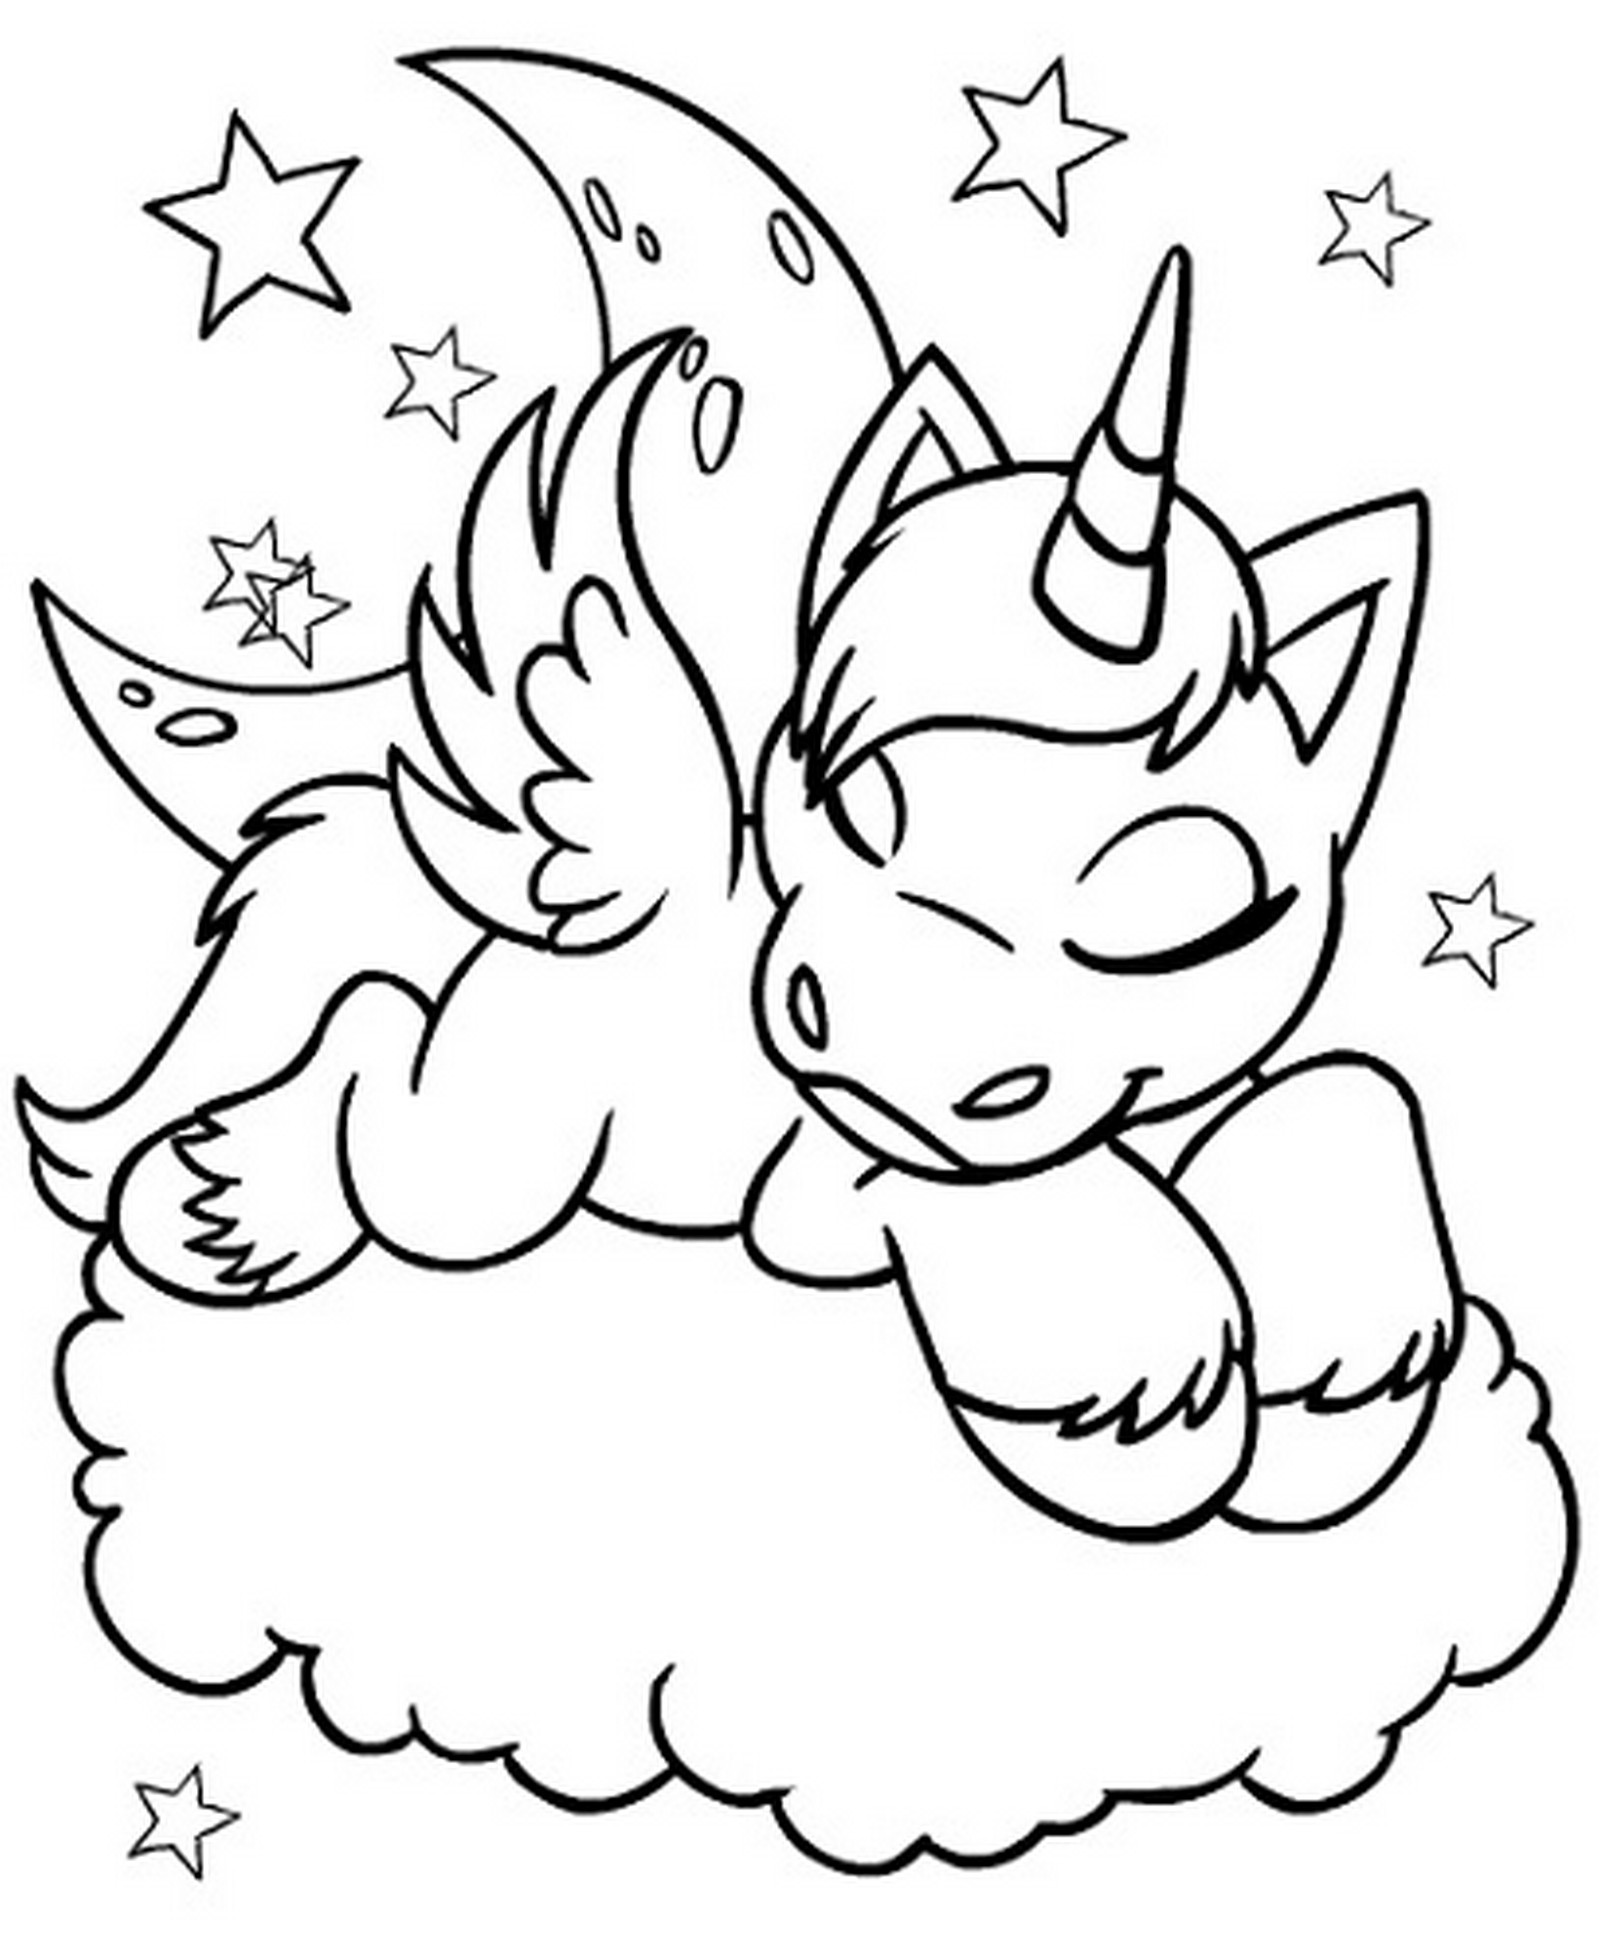 unicorn coloring pages free - Learning Printable